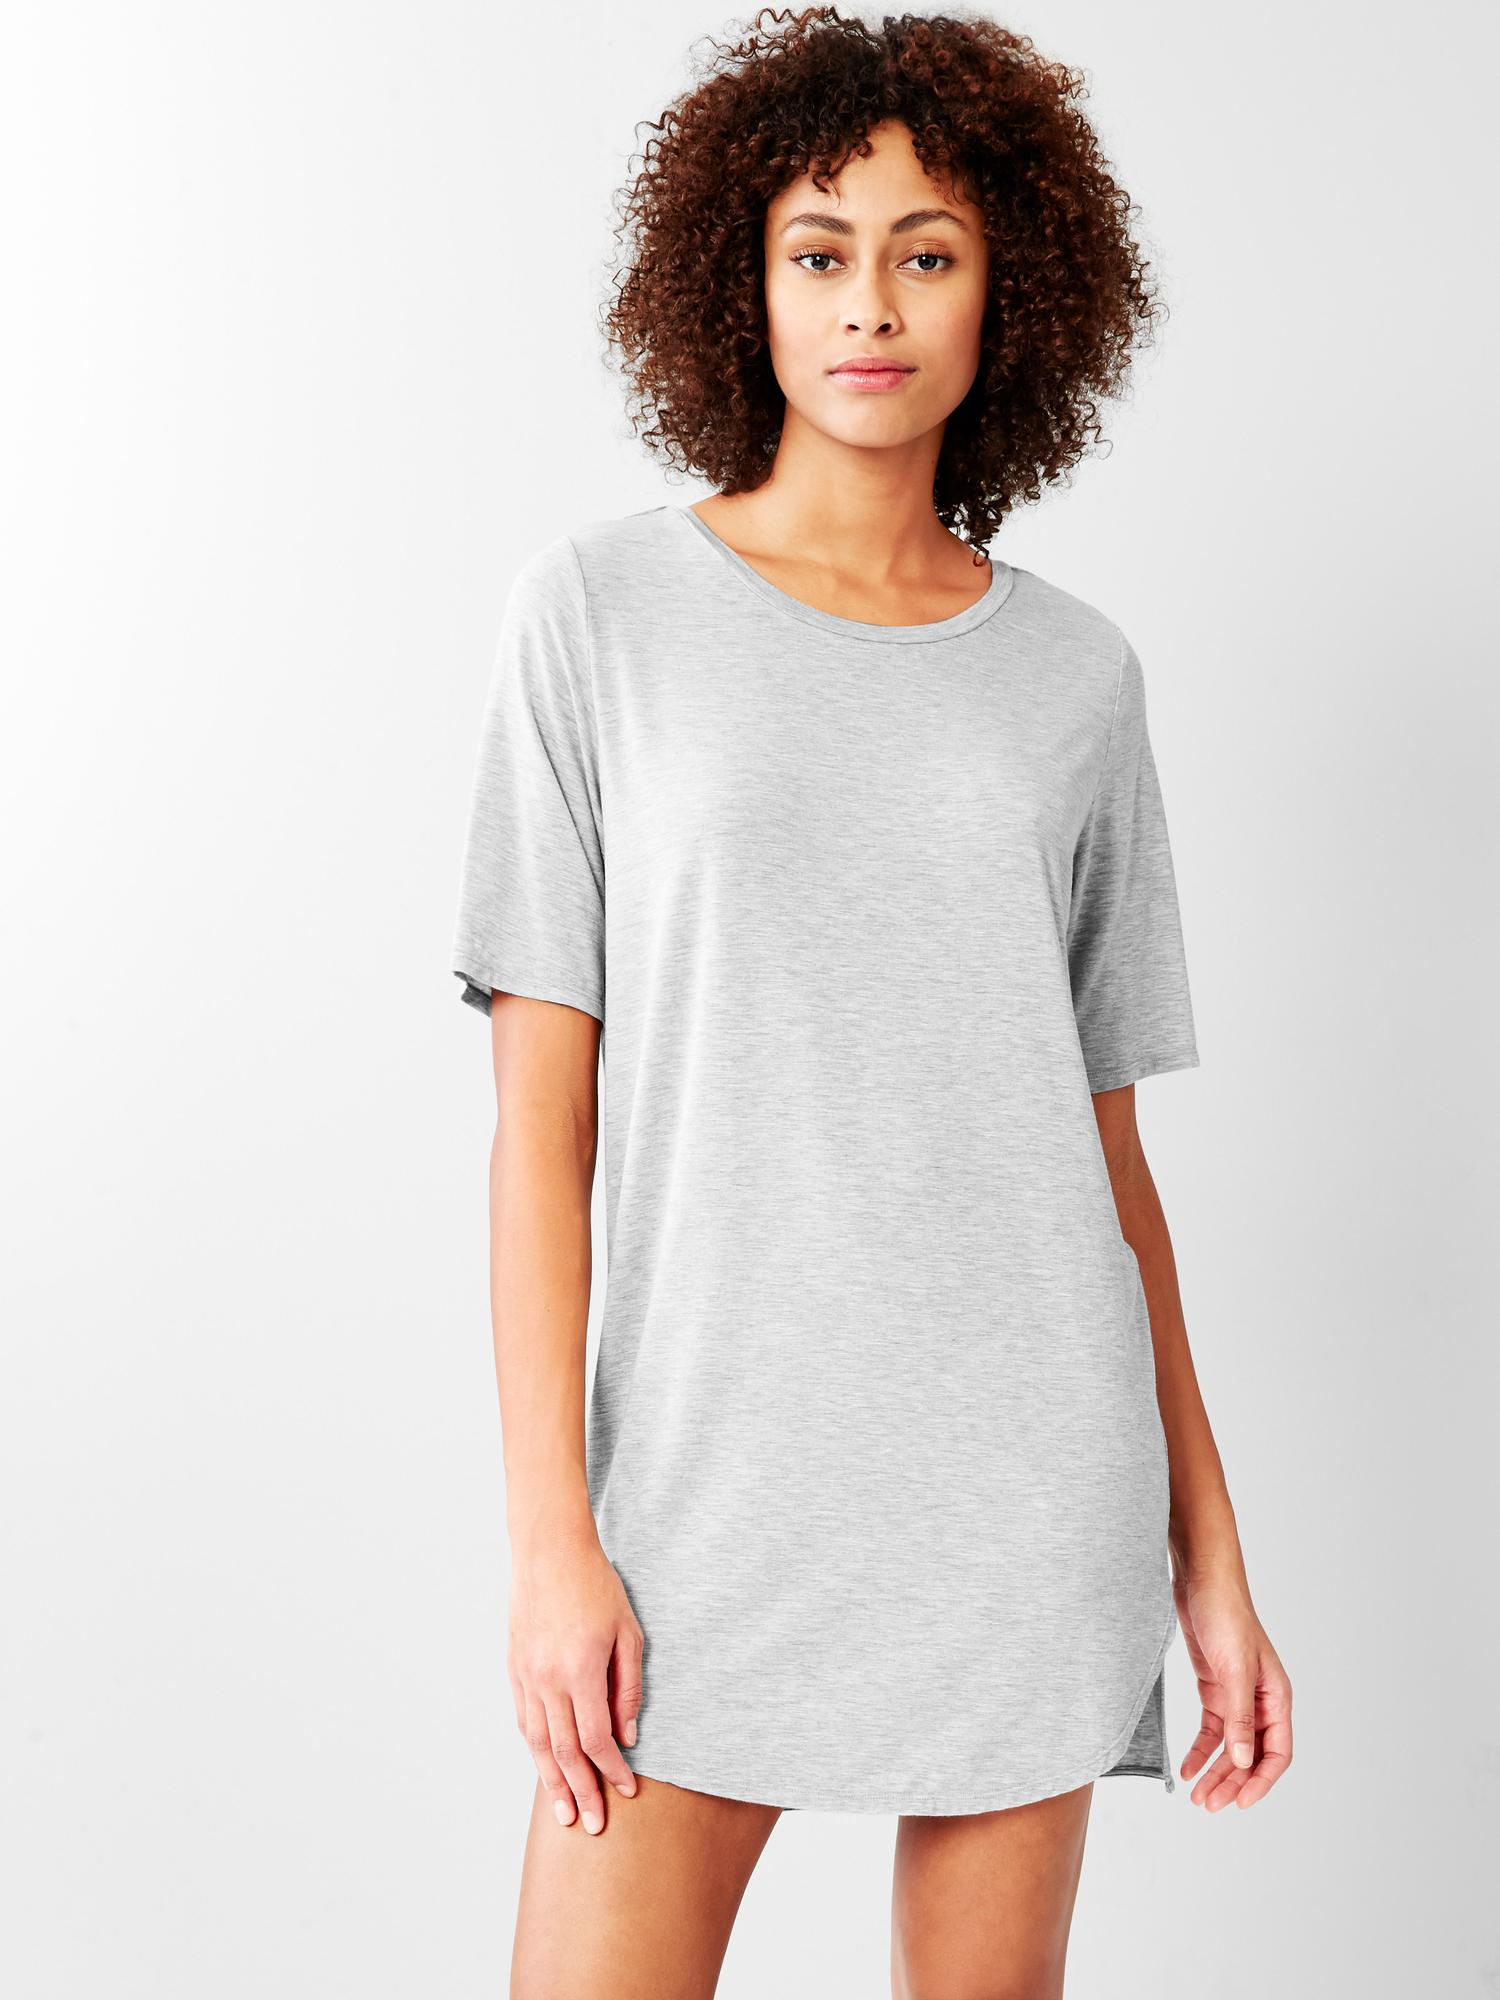 Gap pure body essentials t shirt dress in gray light for Gap petite t shirts